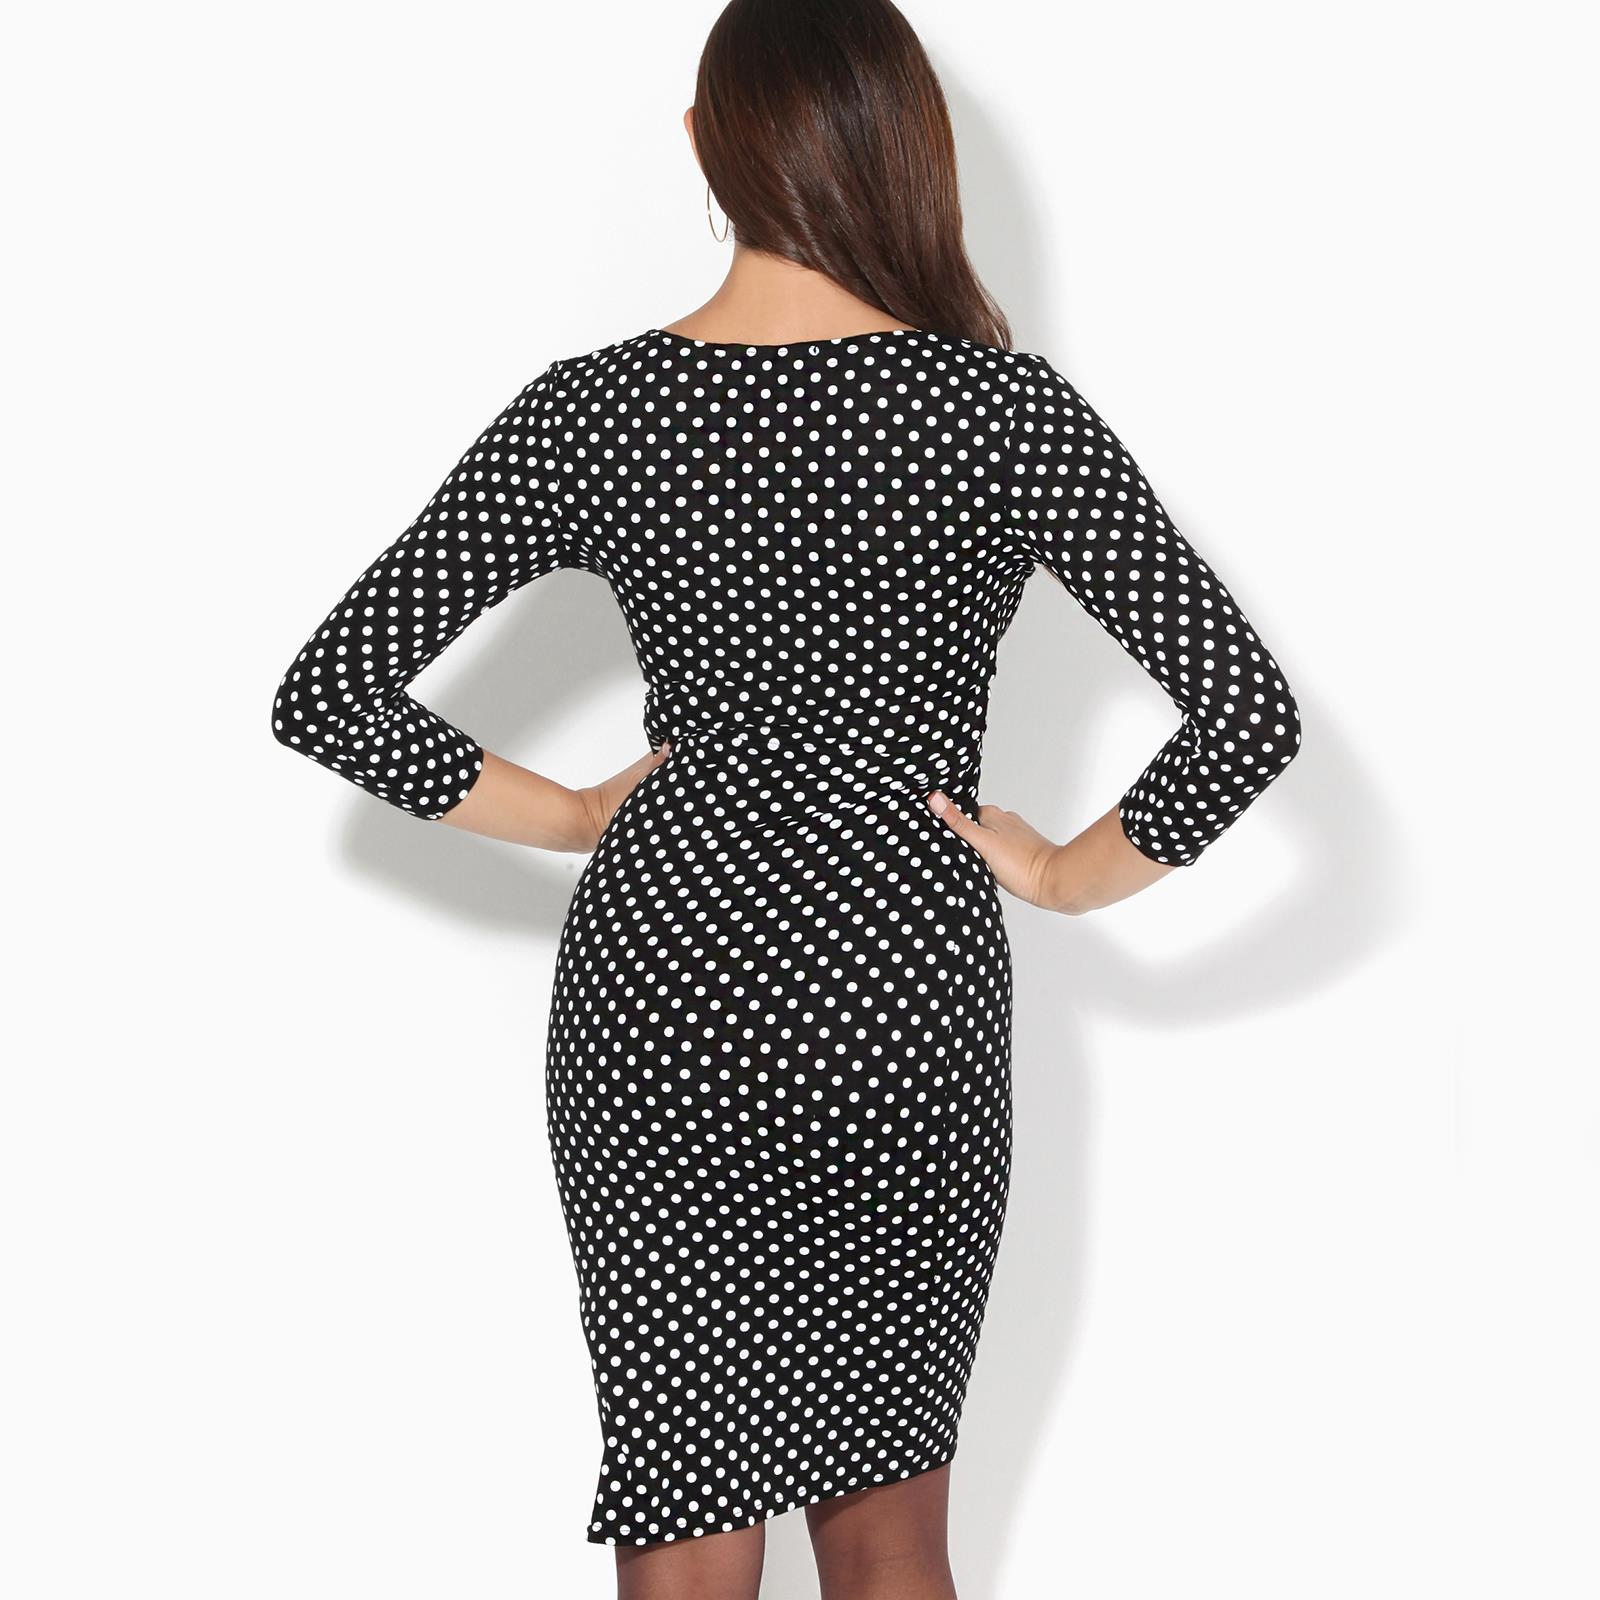 Womens-Polka-Dot-Dress-Pleated-Skirt-Wrap-Front-Midi-V-Neck-Top-Swing-Party thumbnail 4